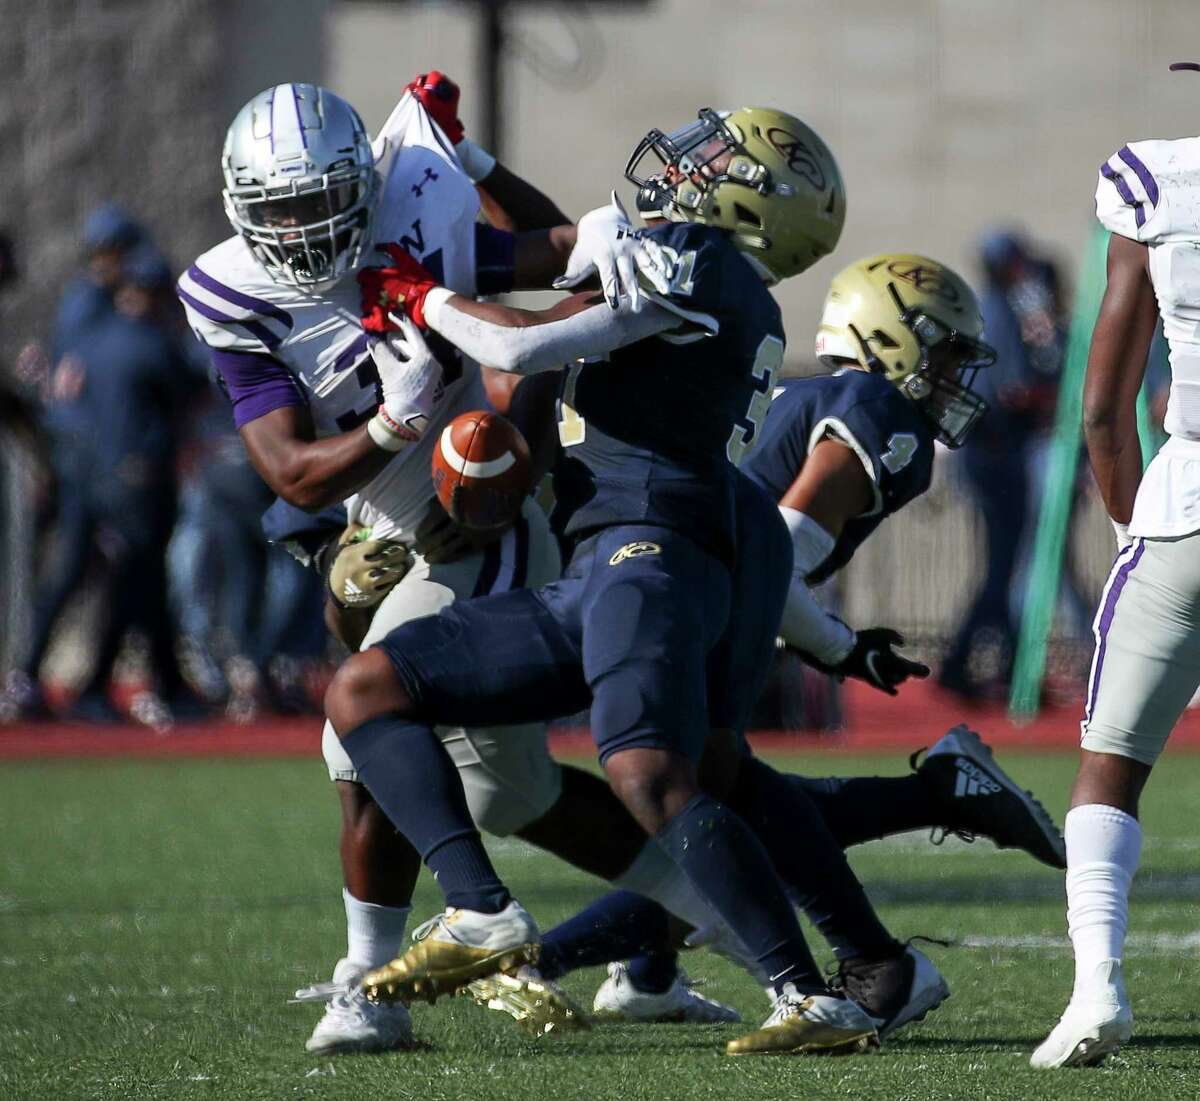 Klein Cain Hurricanes running back Aaron Jordan (34) fumbles the ball after being hit by Klein Collins Tigers defensive back Addison Luke Taylor (31) during the first half of a high school football game Saturday, Nov. 7, 2020, at Klein Memorial Stadium in Spring.